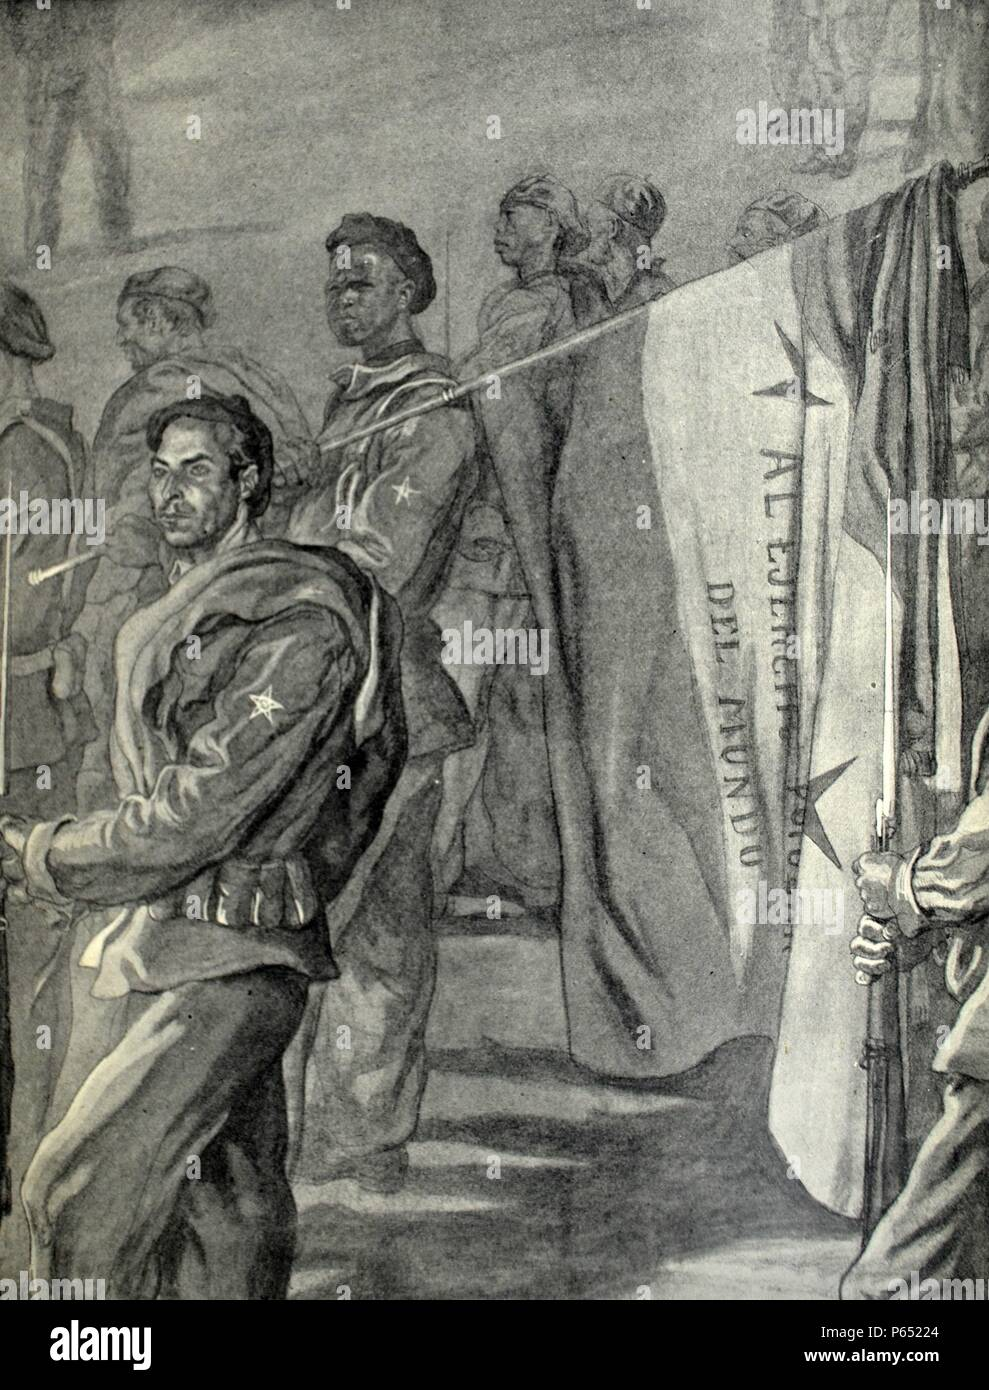 Spanish civil war: soldiers from Spanish Sahara in support of Franco Drawing by C. Sáenz de Tejada - Stock Image